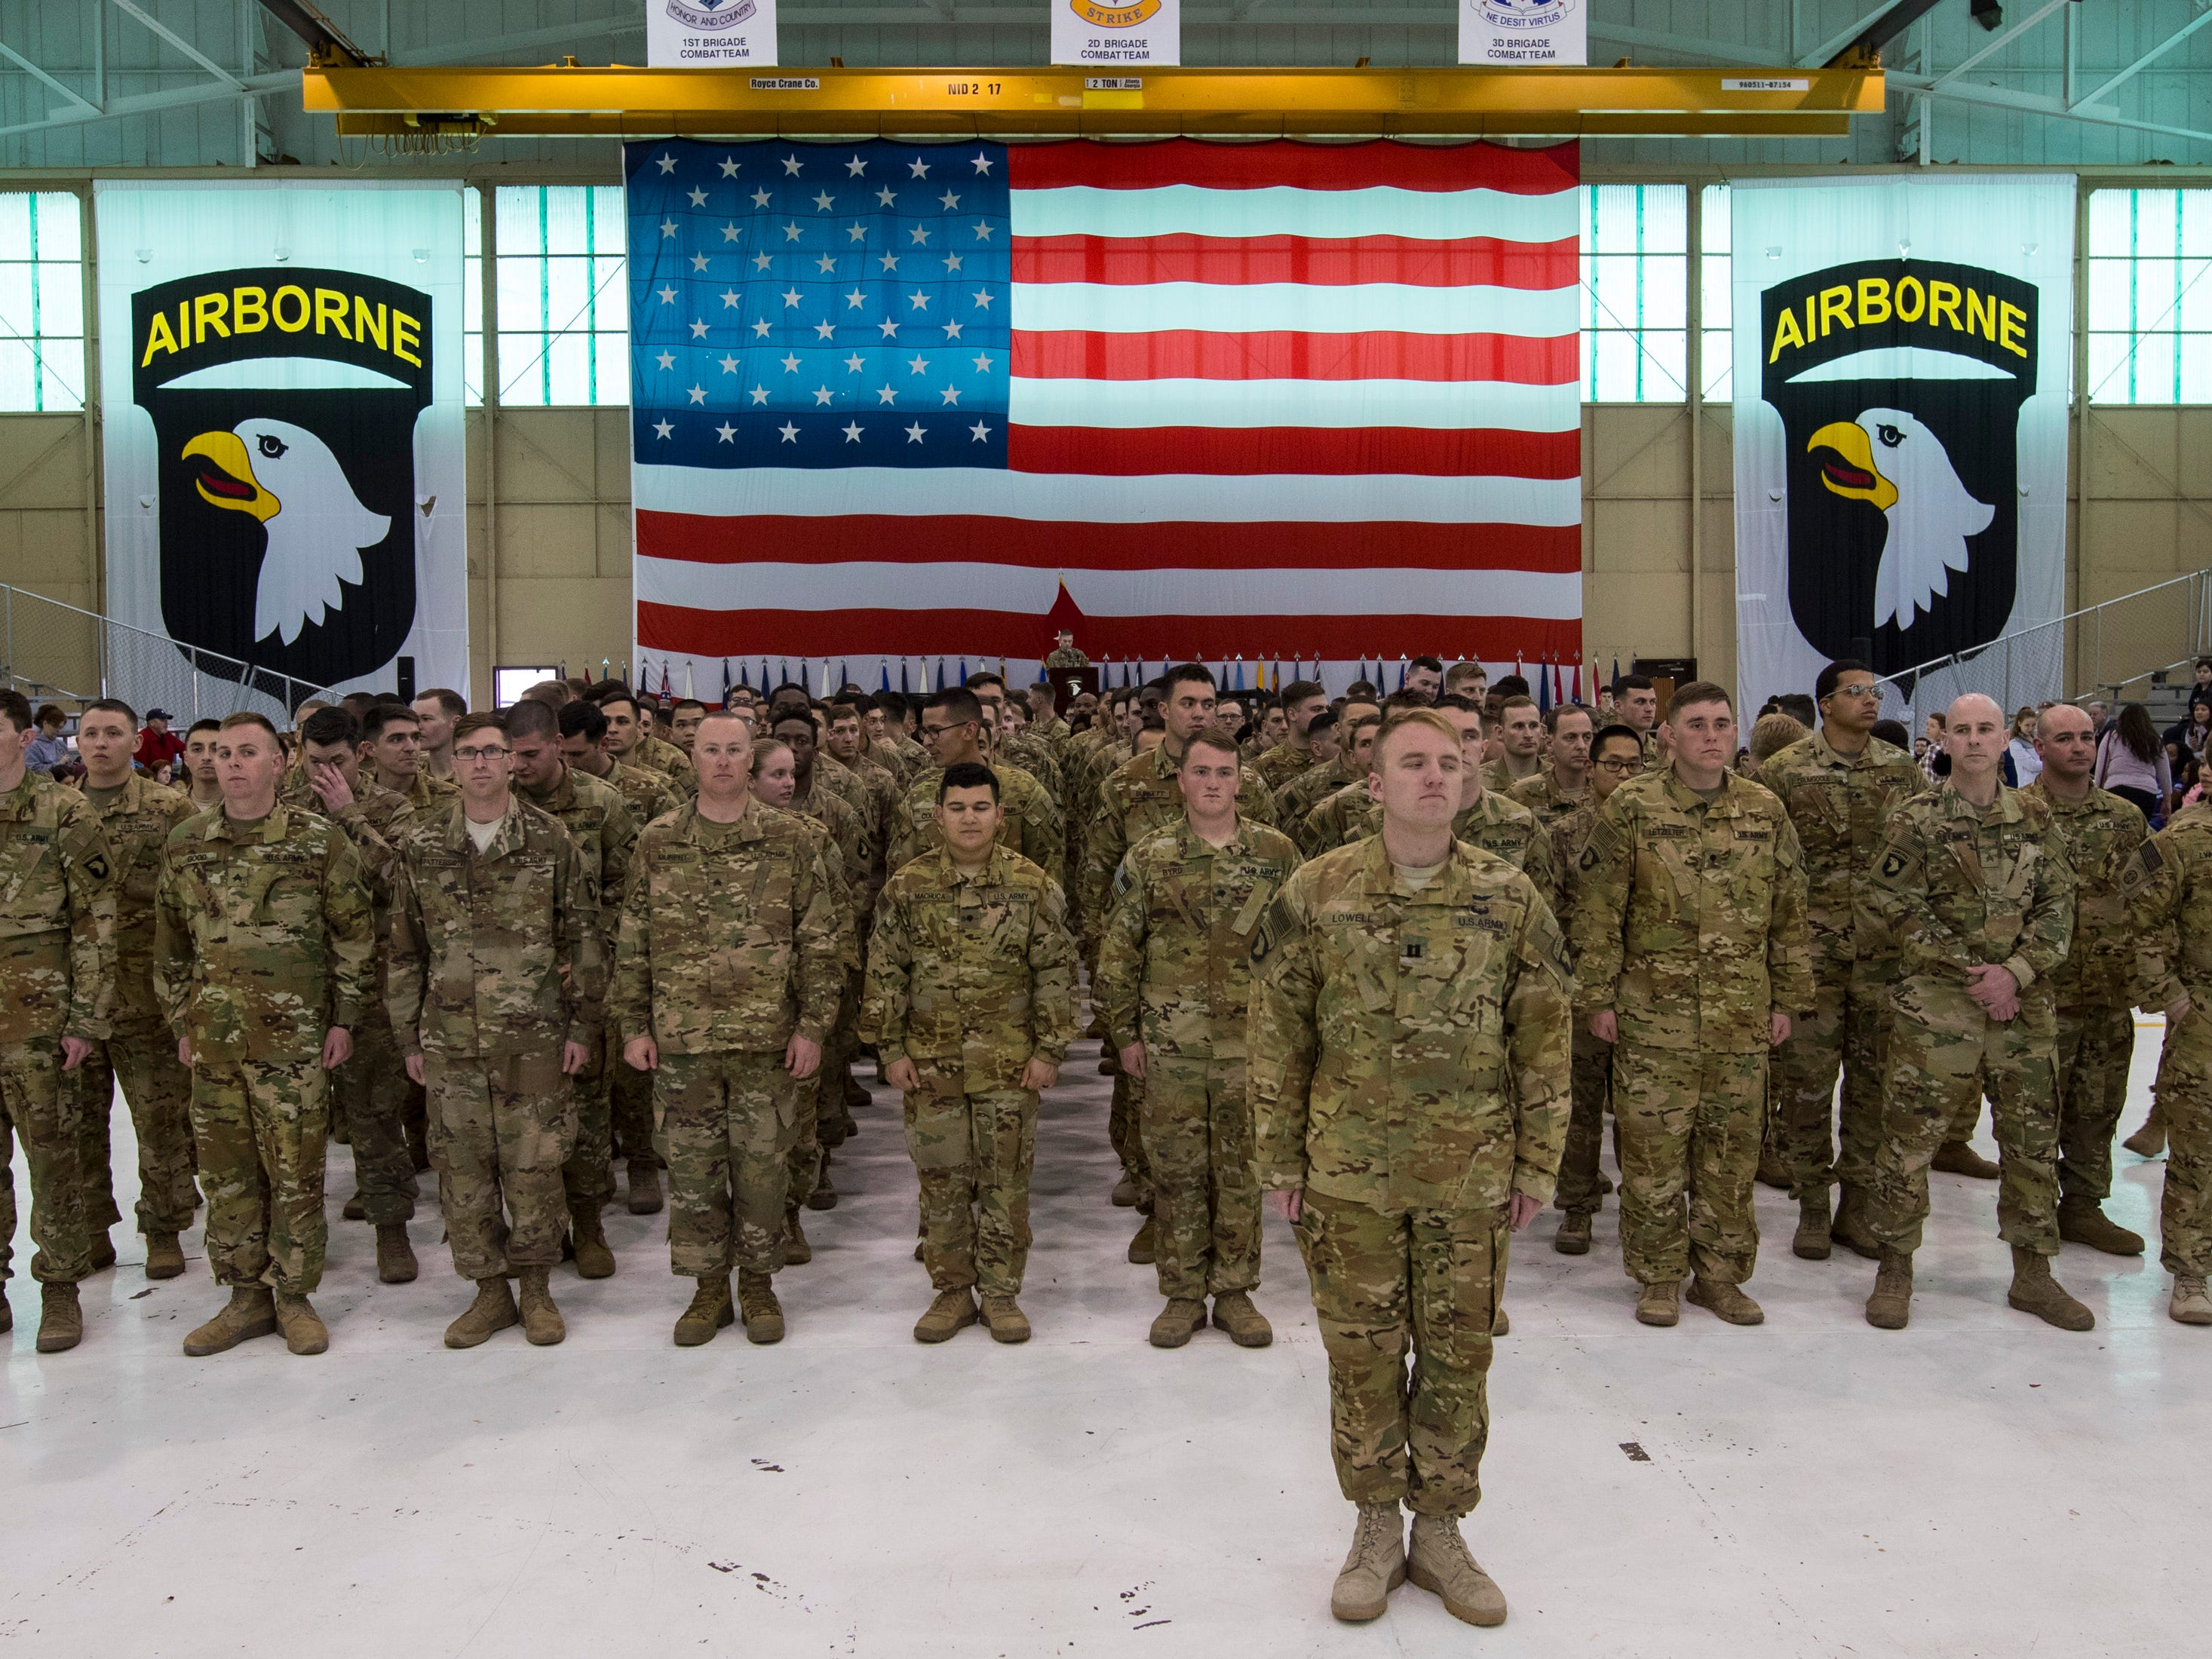 Members of the 101st Combat Aviation Brigade stand in formation during a welcome home ceremony for them at Fort Campbell in Clarksville on Tuesday, Feb. 5, 2019. The soldiers were returning from a nine-month deployment to Afghanistan.